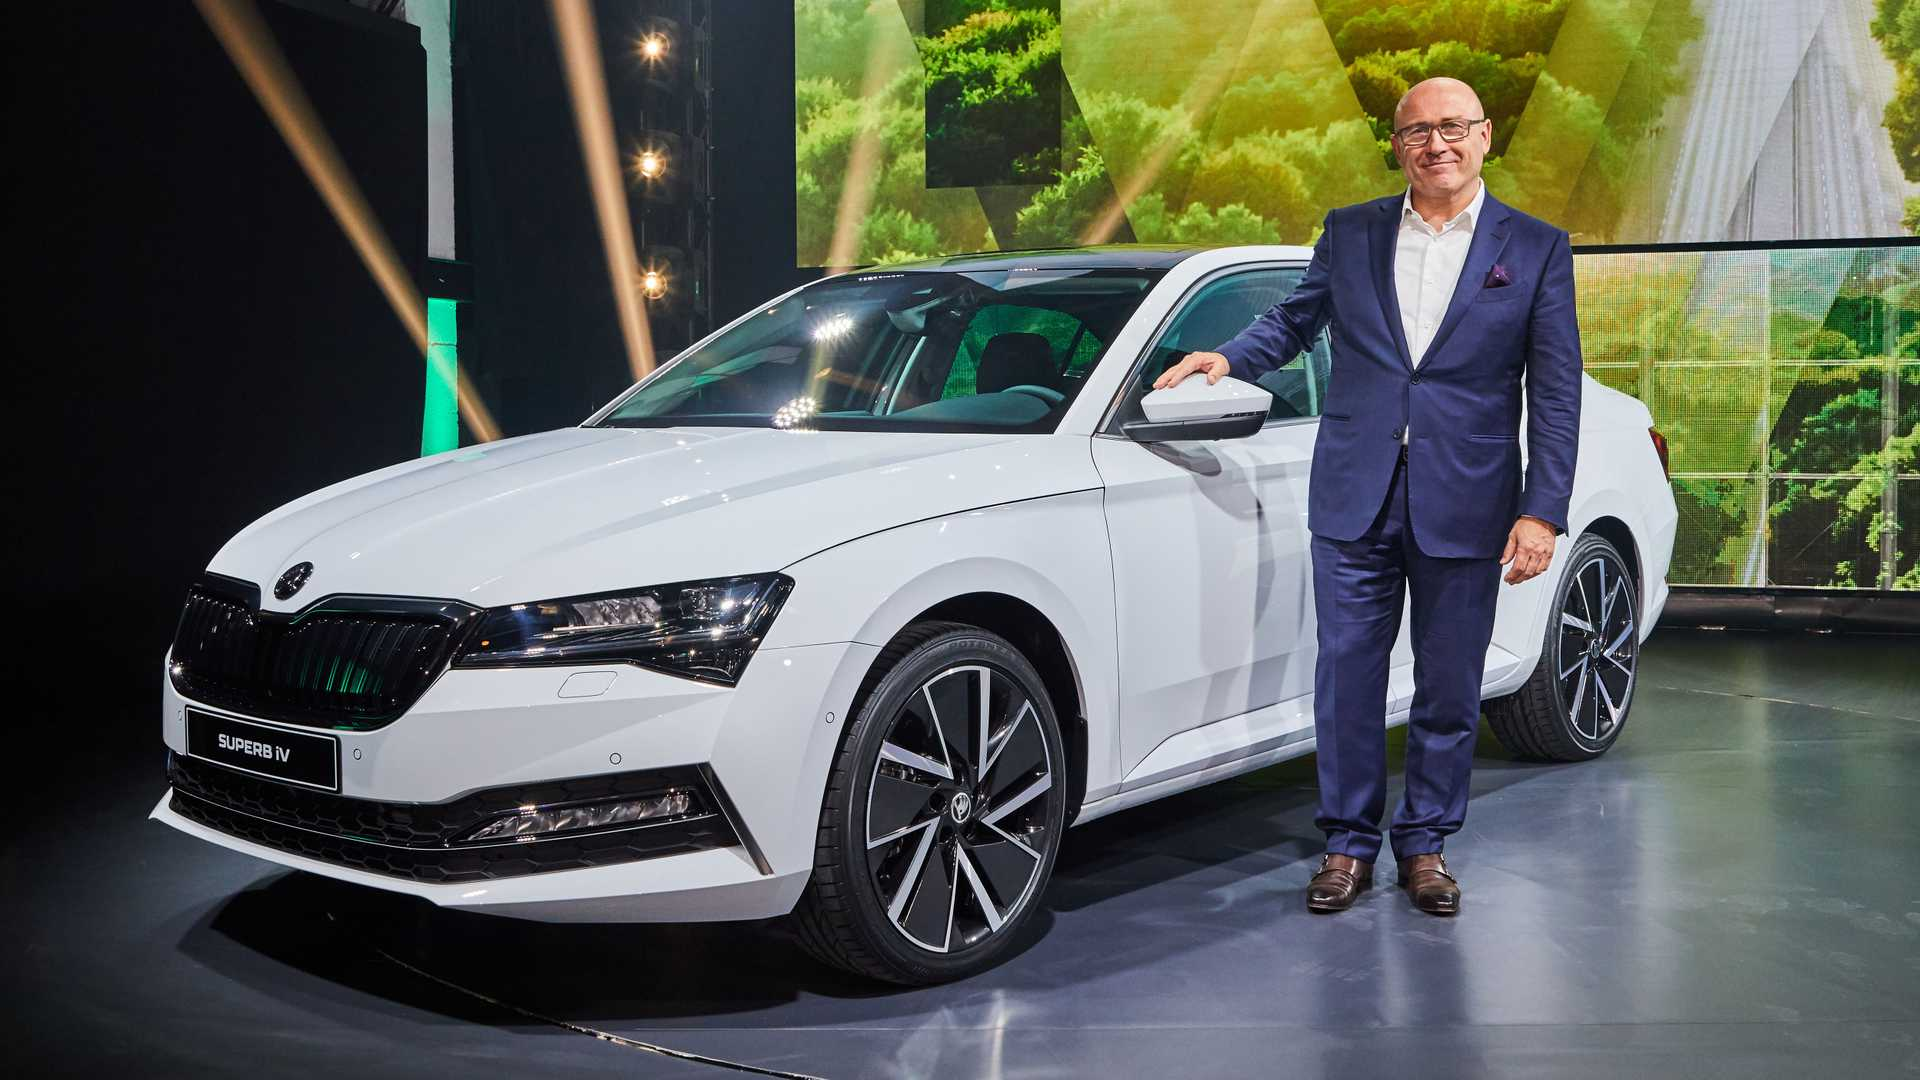 The new Skoda Superb to offer you a comfortable journey